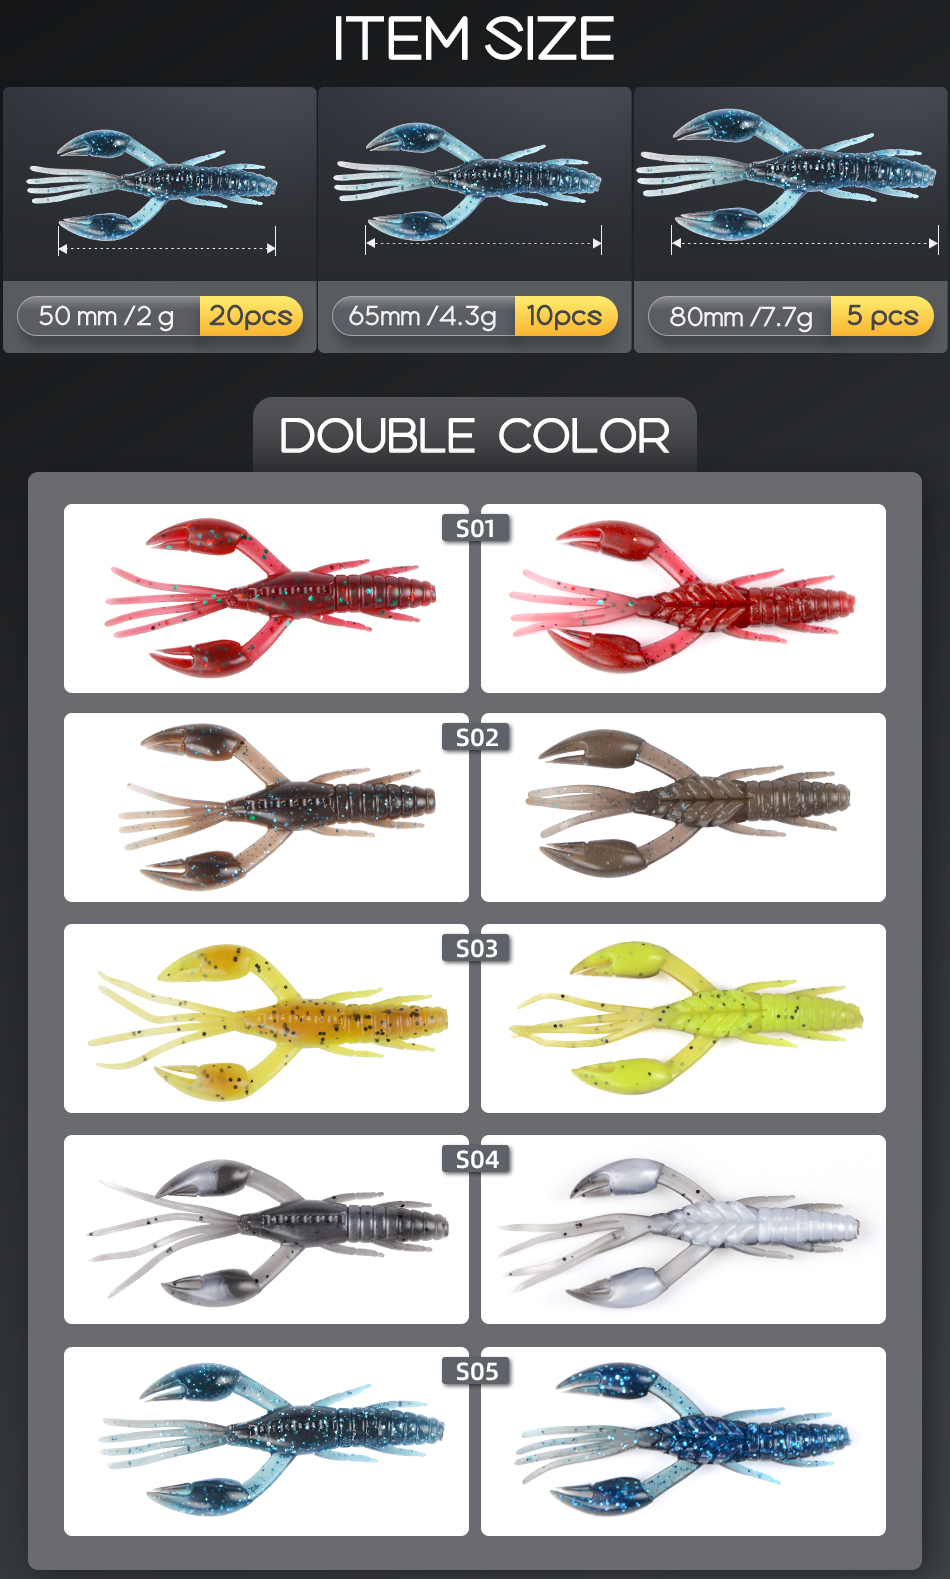 MEREDITH 50mm 65mm 80mm DoliveCraw Fishing Lures Craws Shrimp Soft Lure Fishing Bait Wobblers Bass Lures Soft Silicone